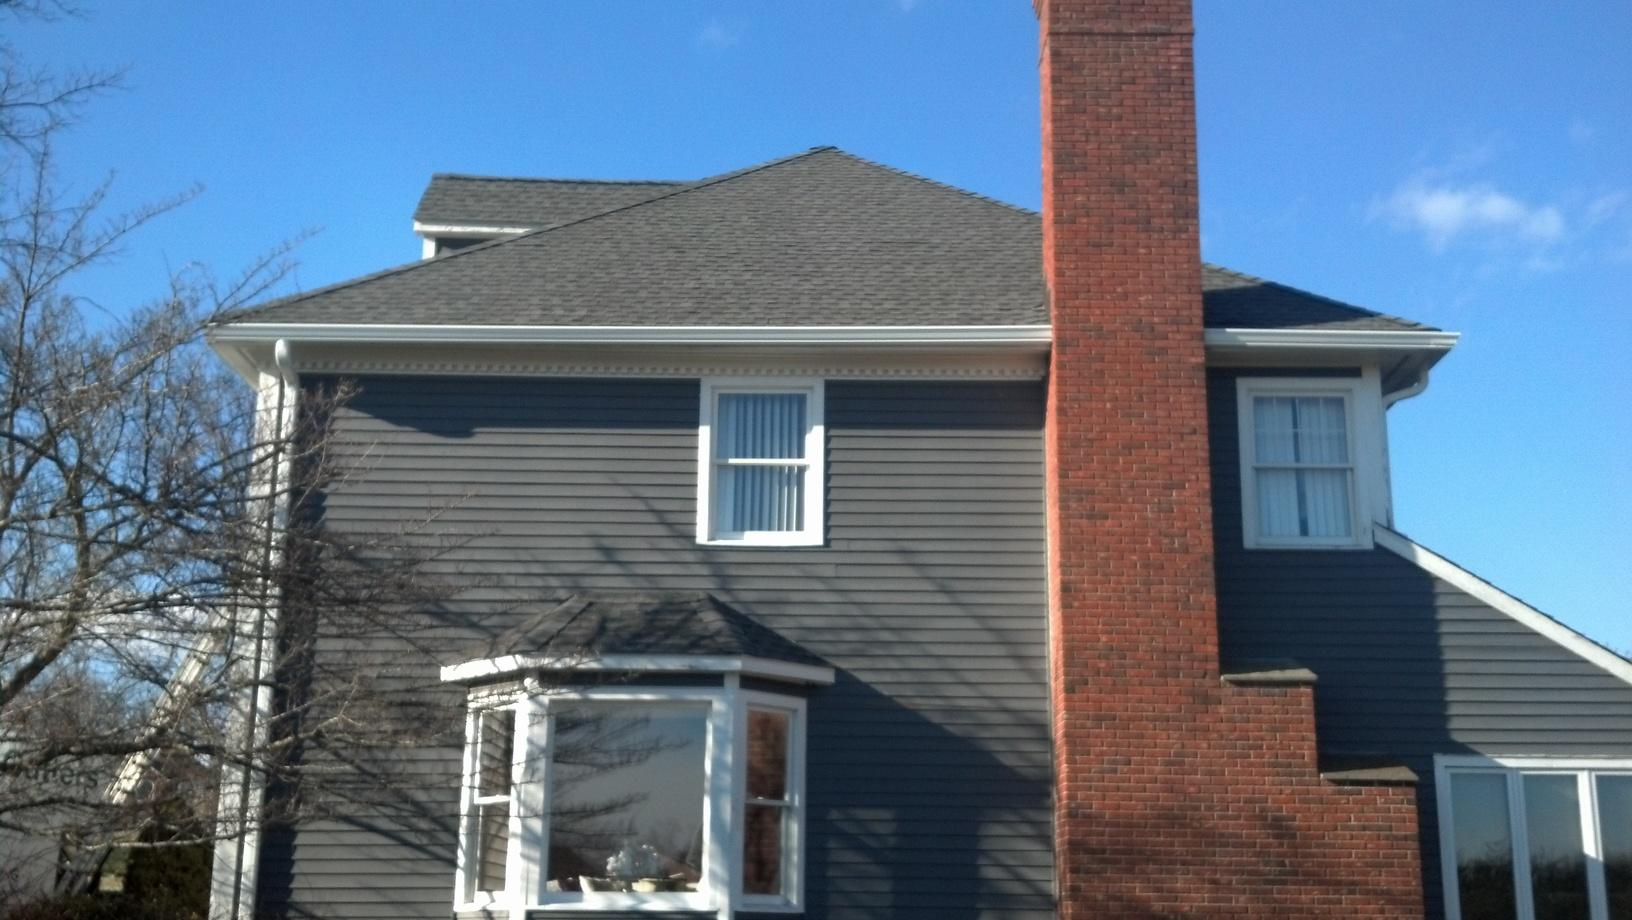 New Gutter Installation on This Home in Trumbull, Ct